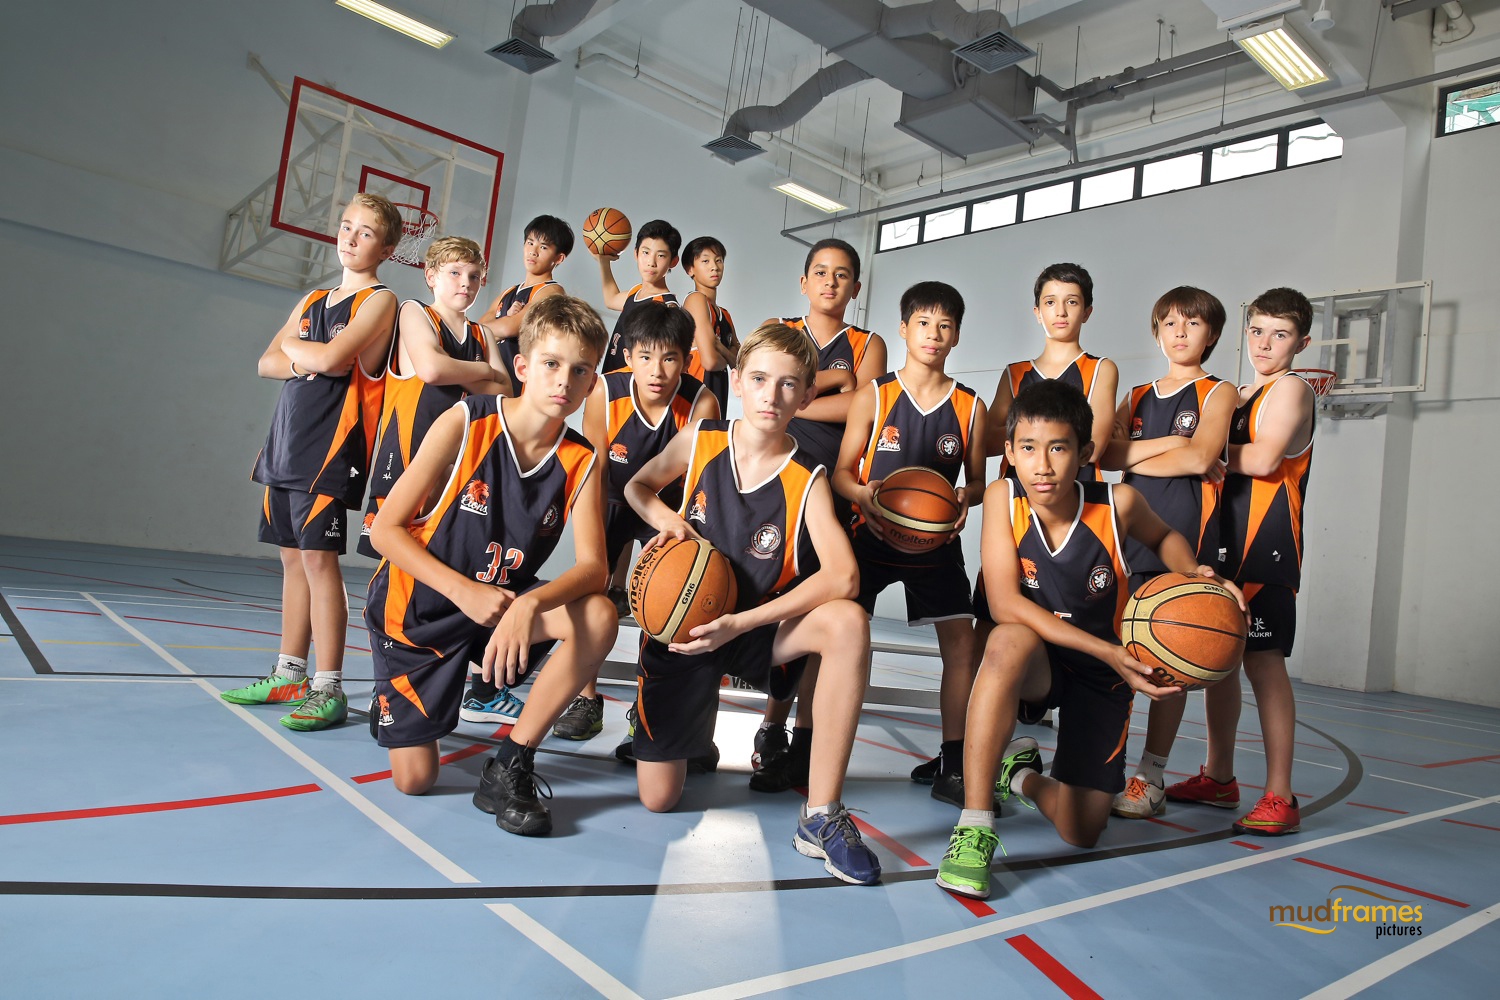 The British International School Under 13 Boys Basketball Team